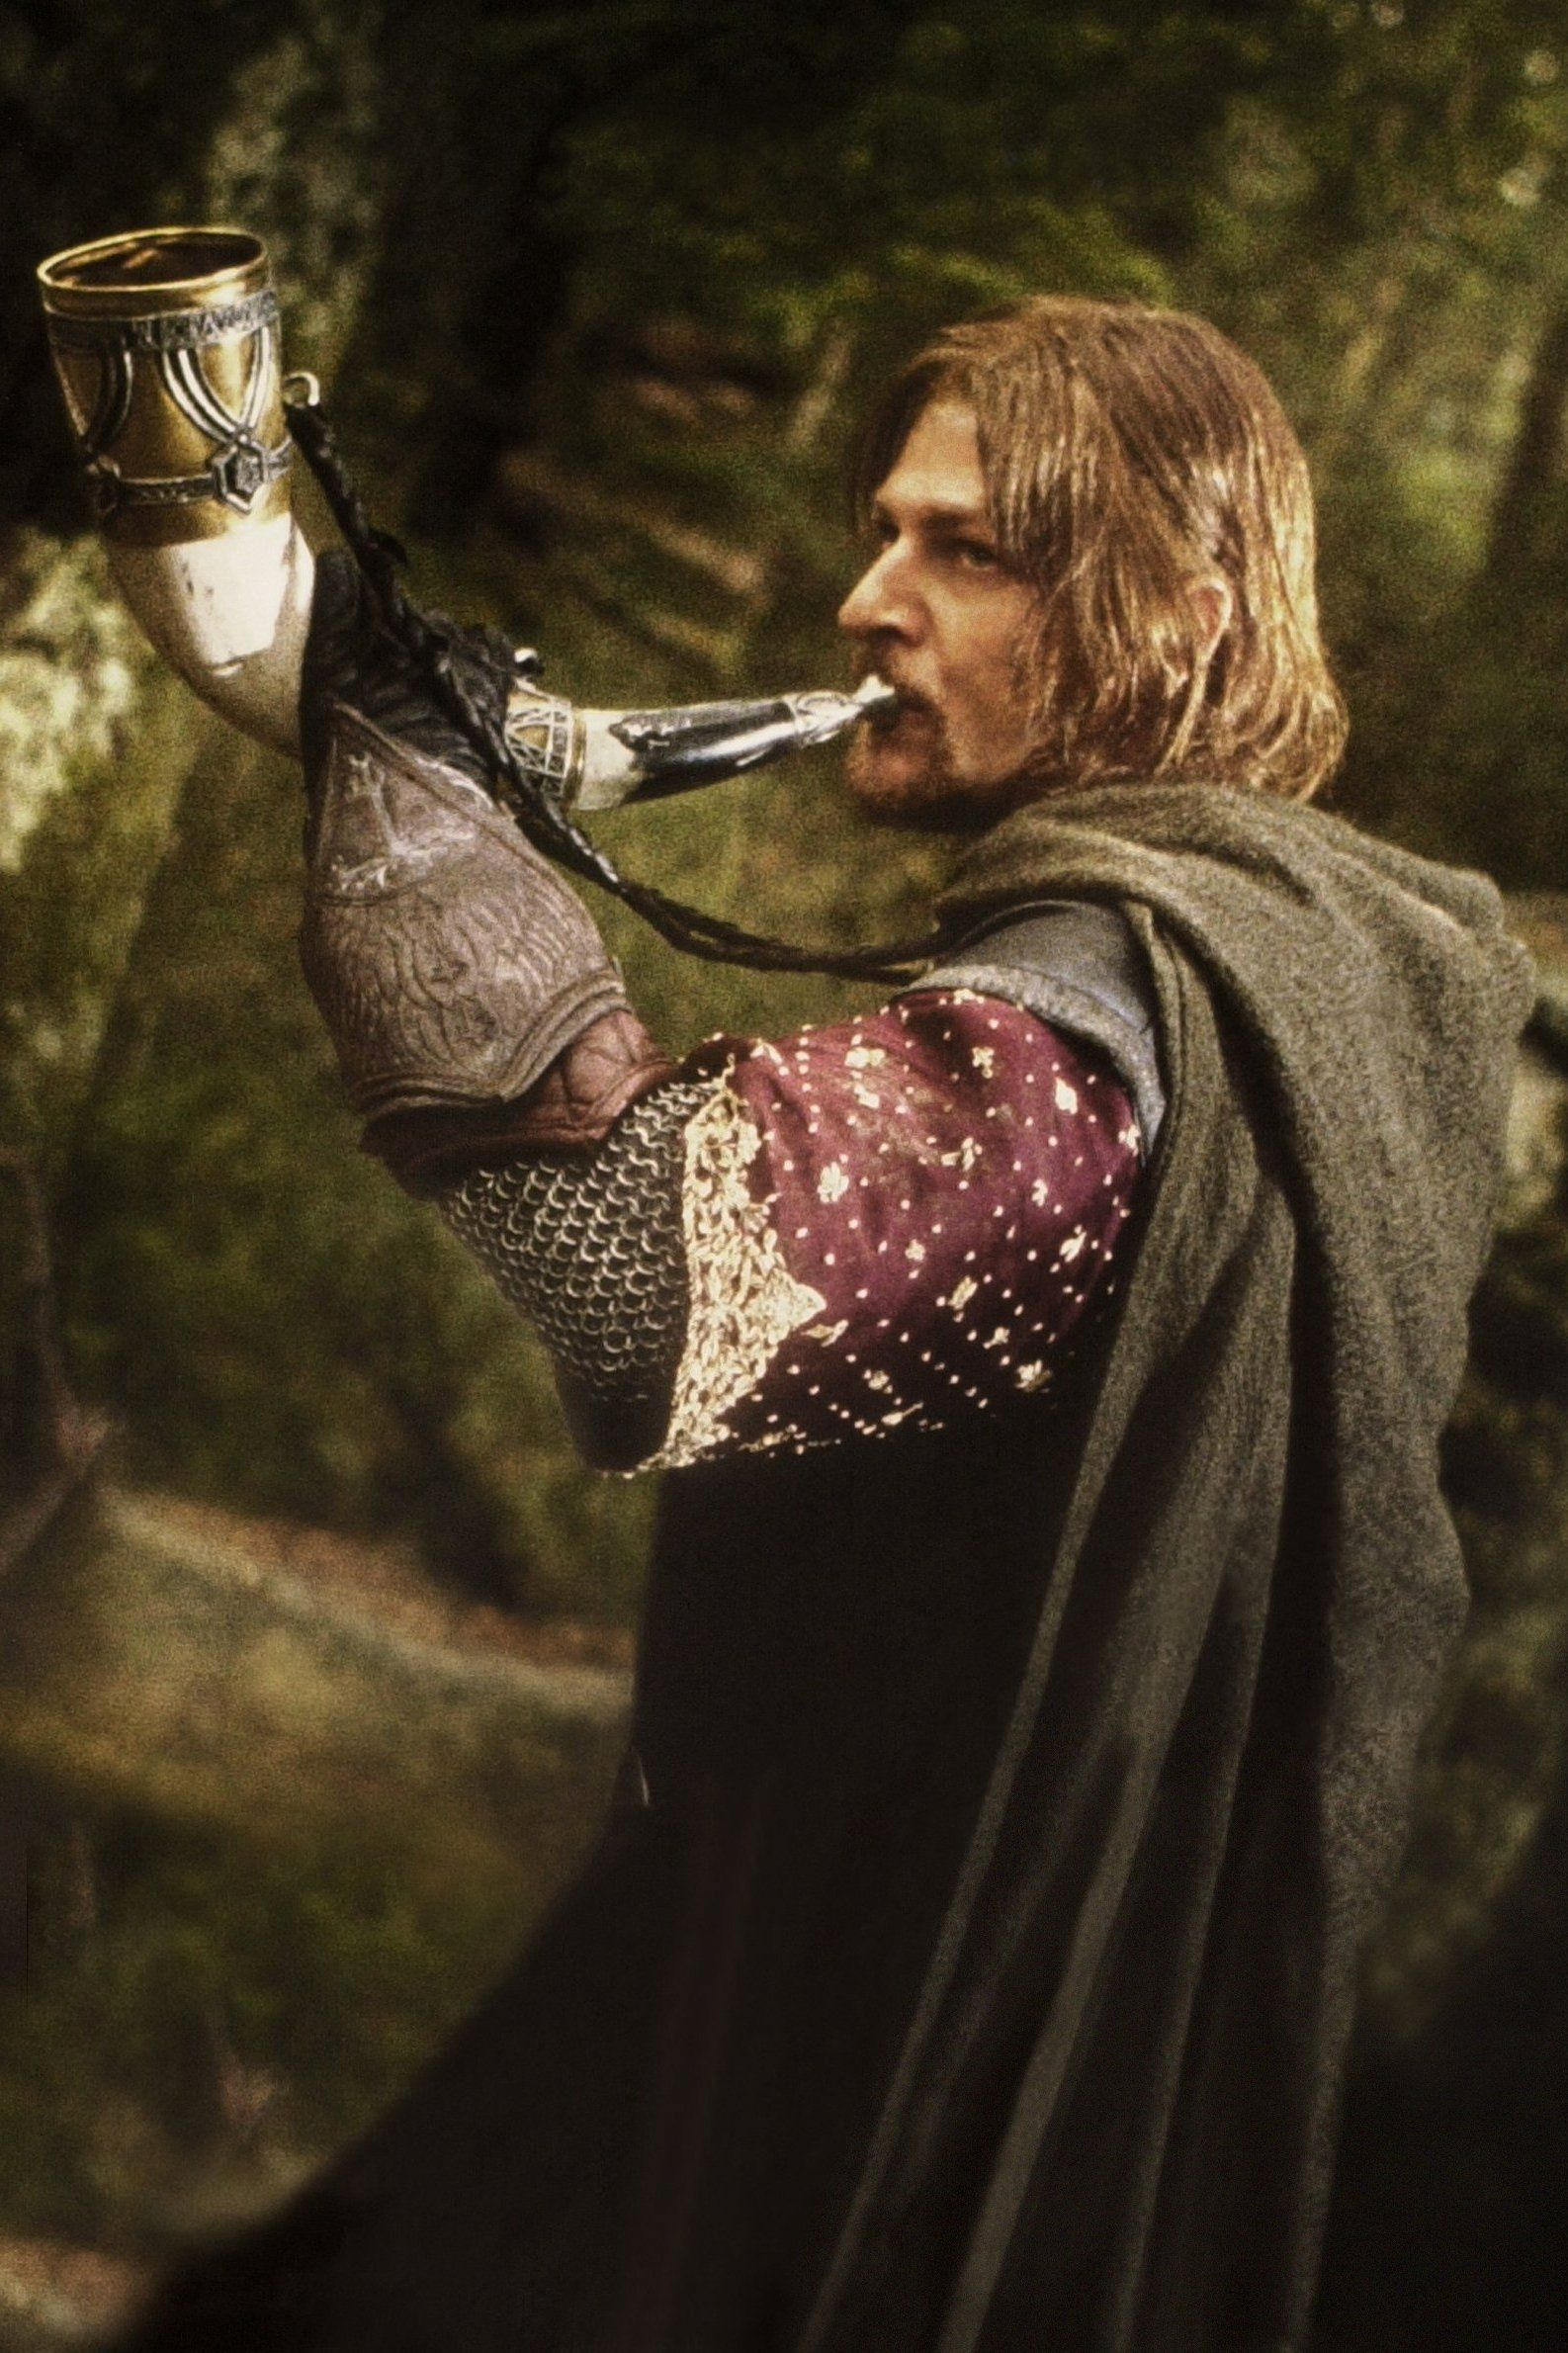 Boromir | The Lord of the Rings: The Fellowship of the Ring This pic